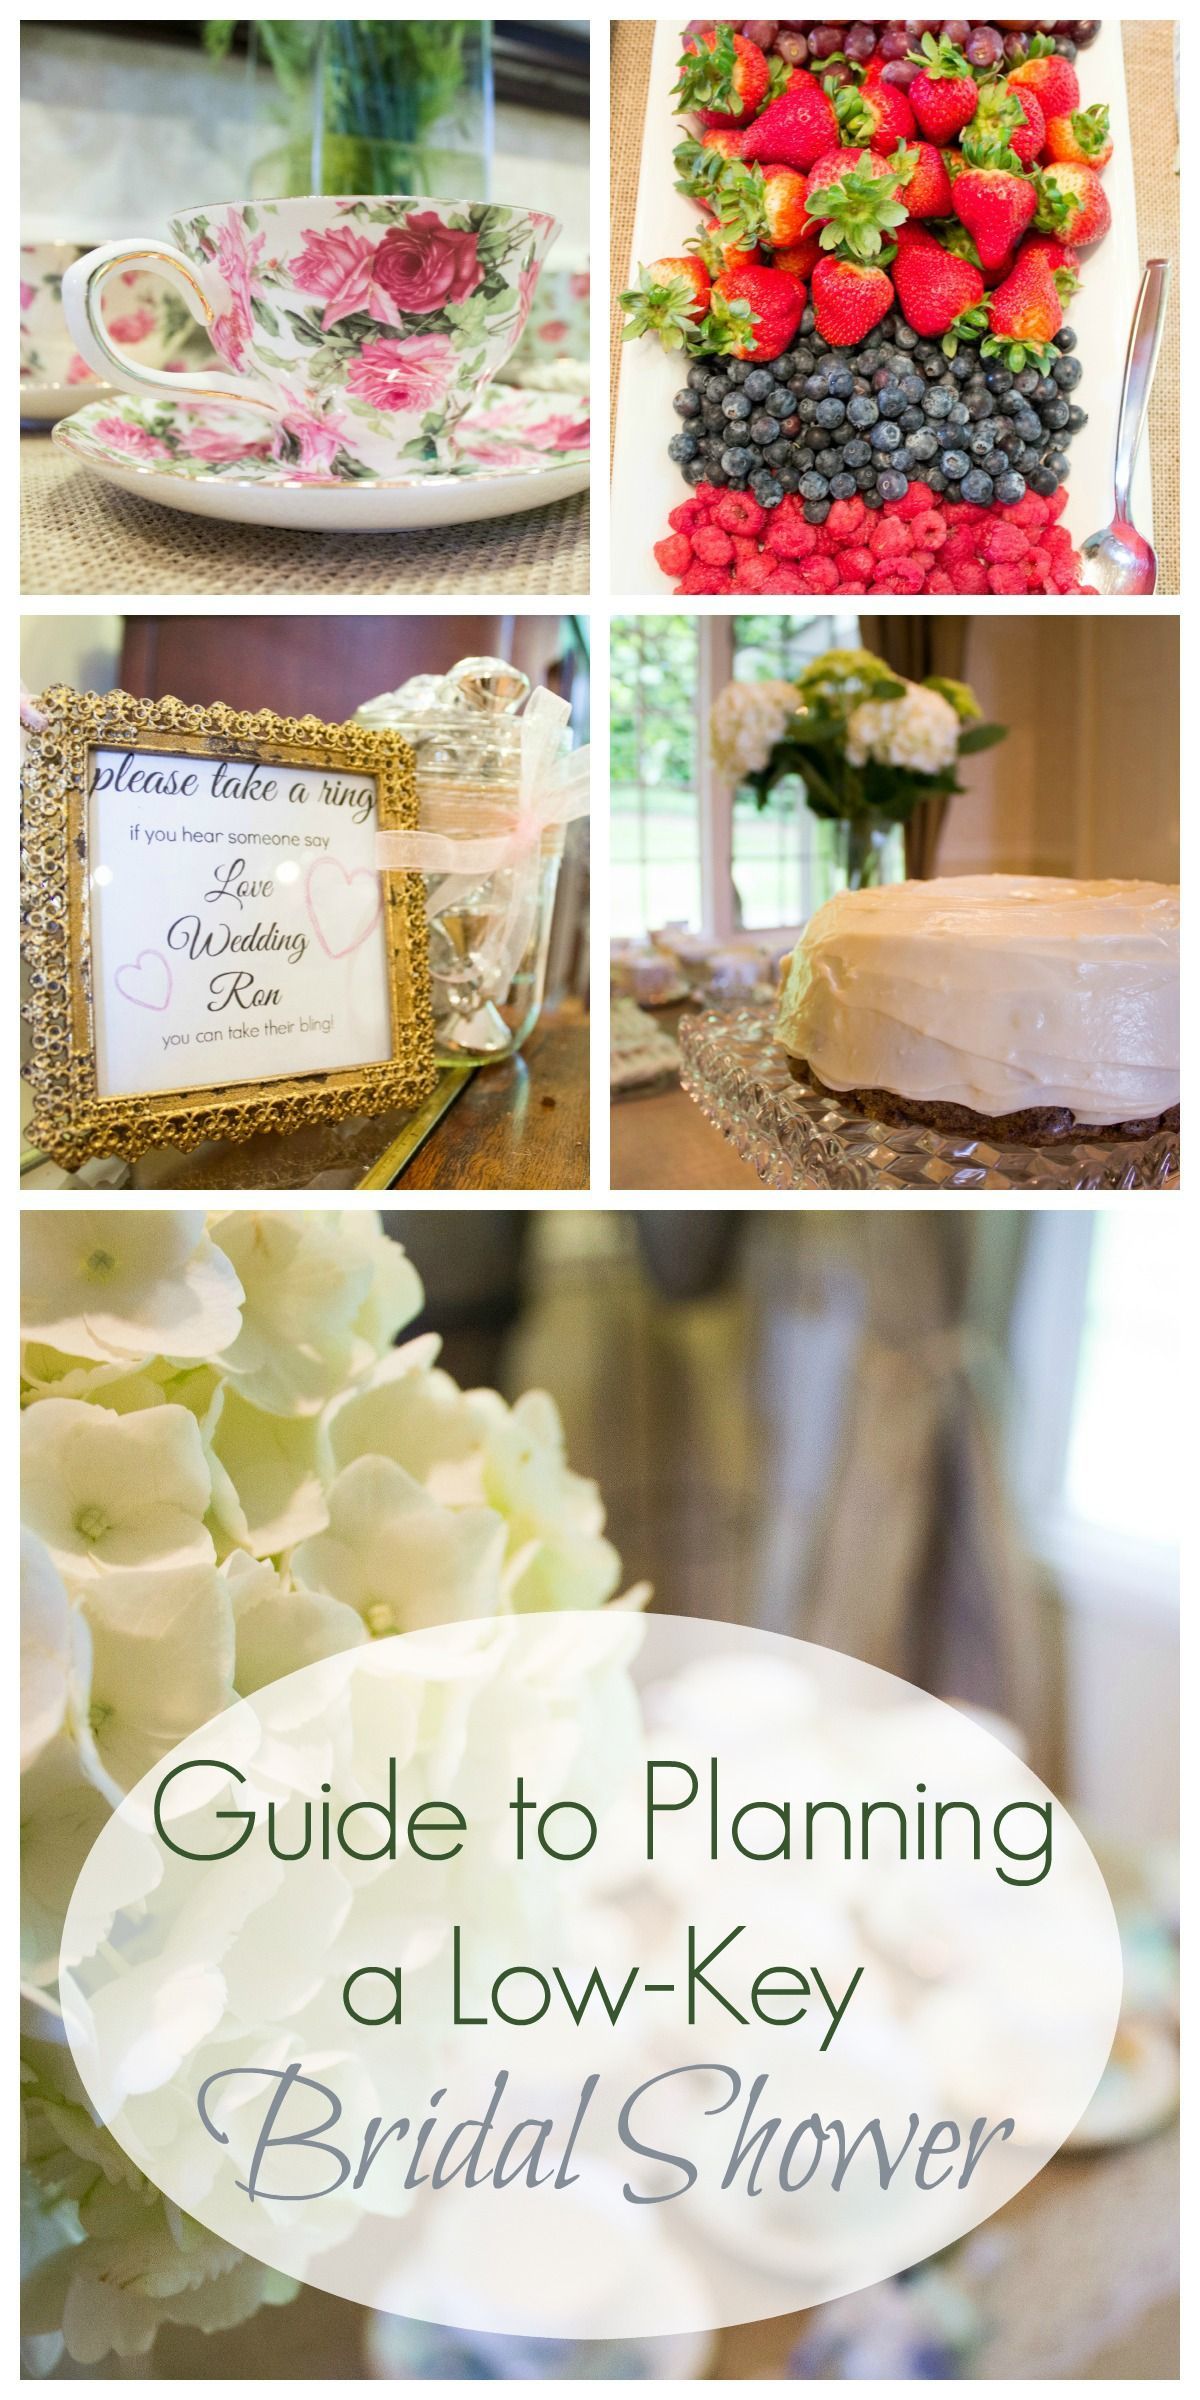 Plan A Beautiful Stunning Low Key Bridal Shower With This Guide